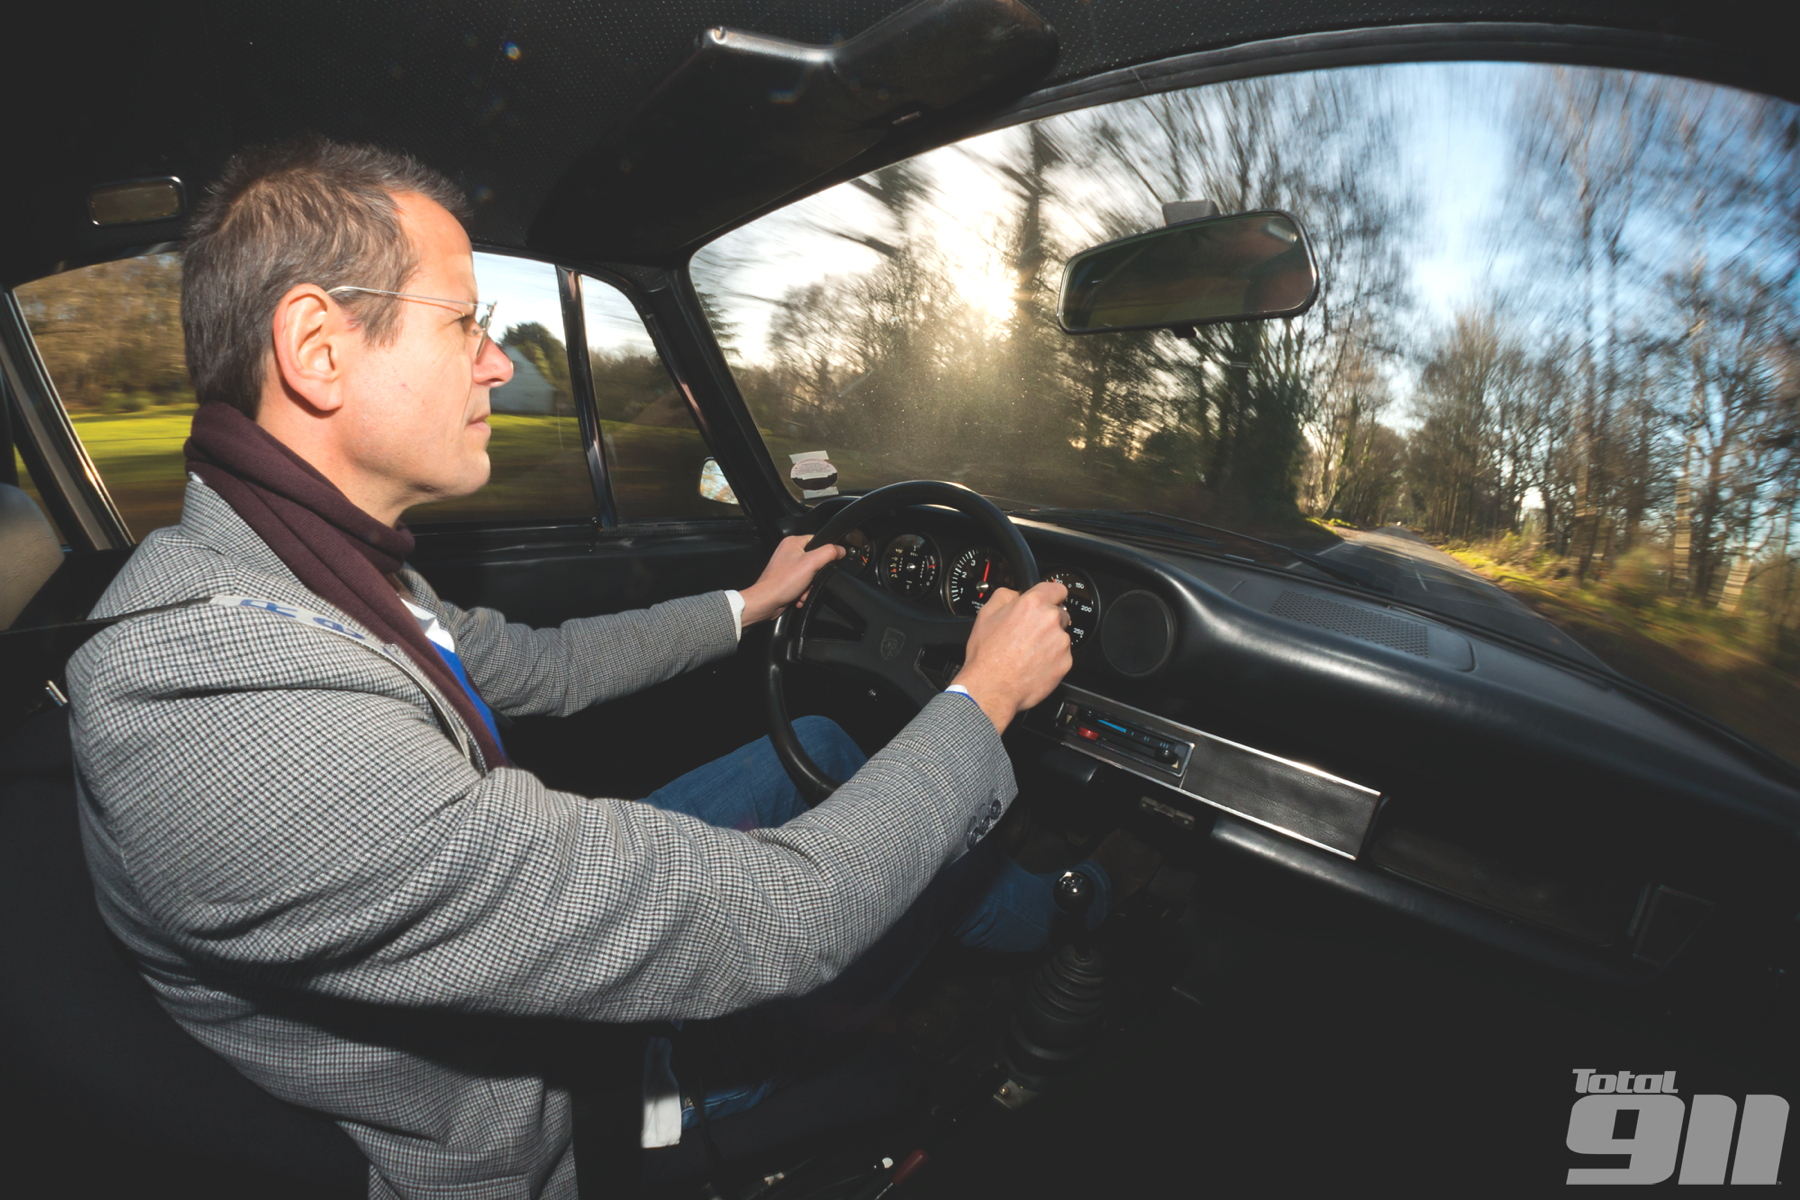 We get behind the wheel of the incredibly rare Porsche 911 Carrera 2.7 RSH